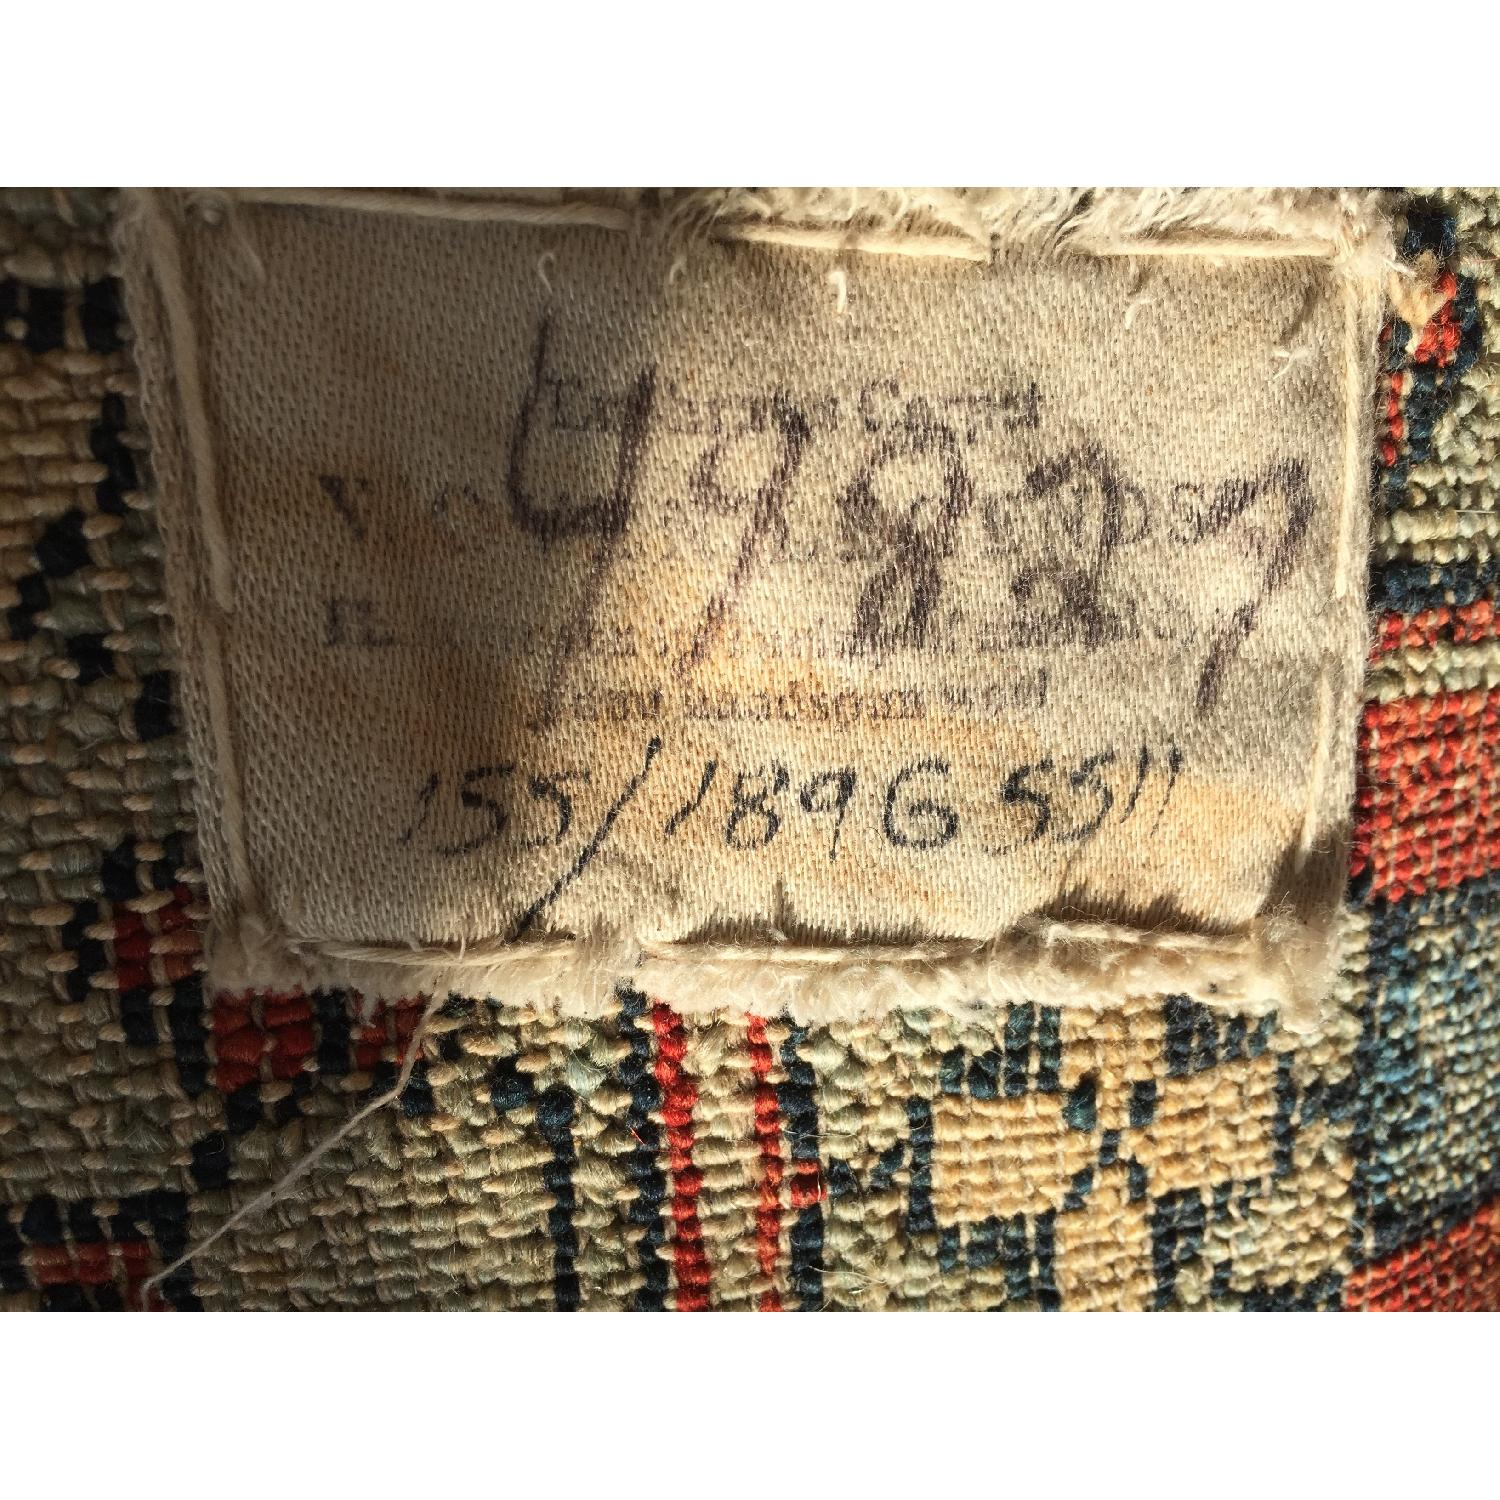 ABC Carpet & Home Woven Legends Turkish Rug - image-3